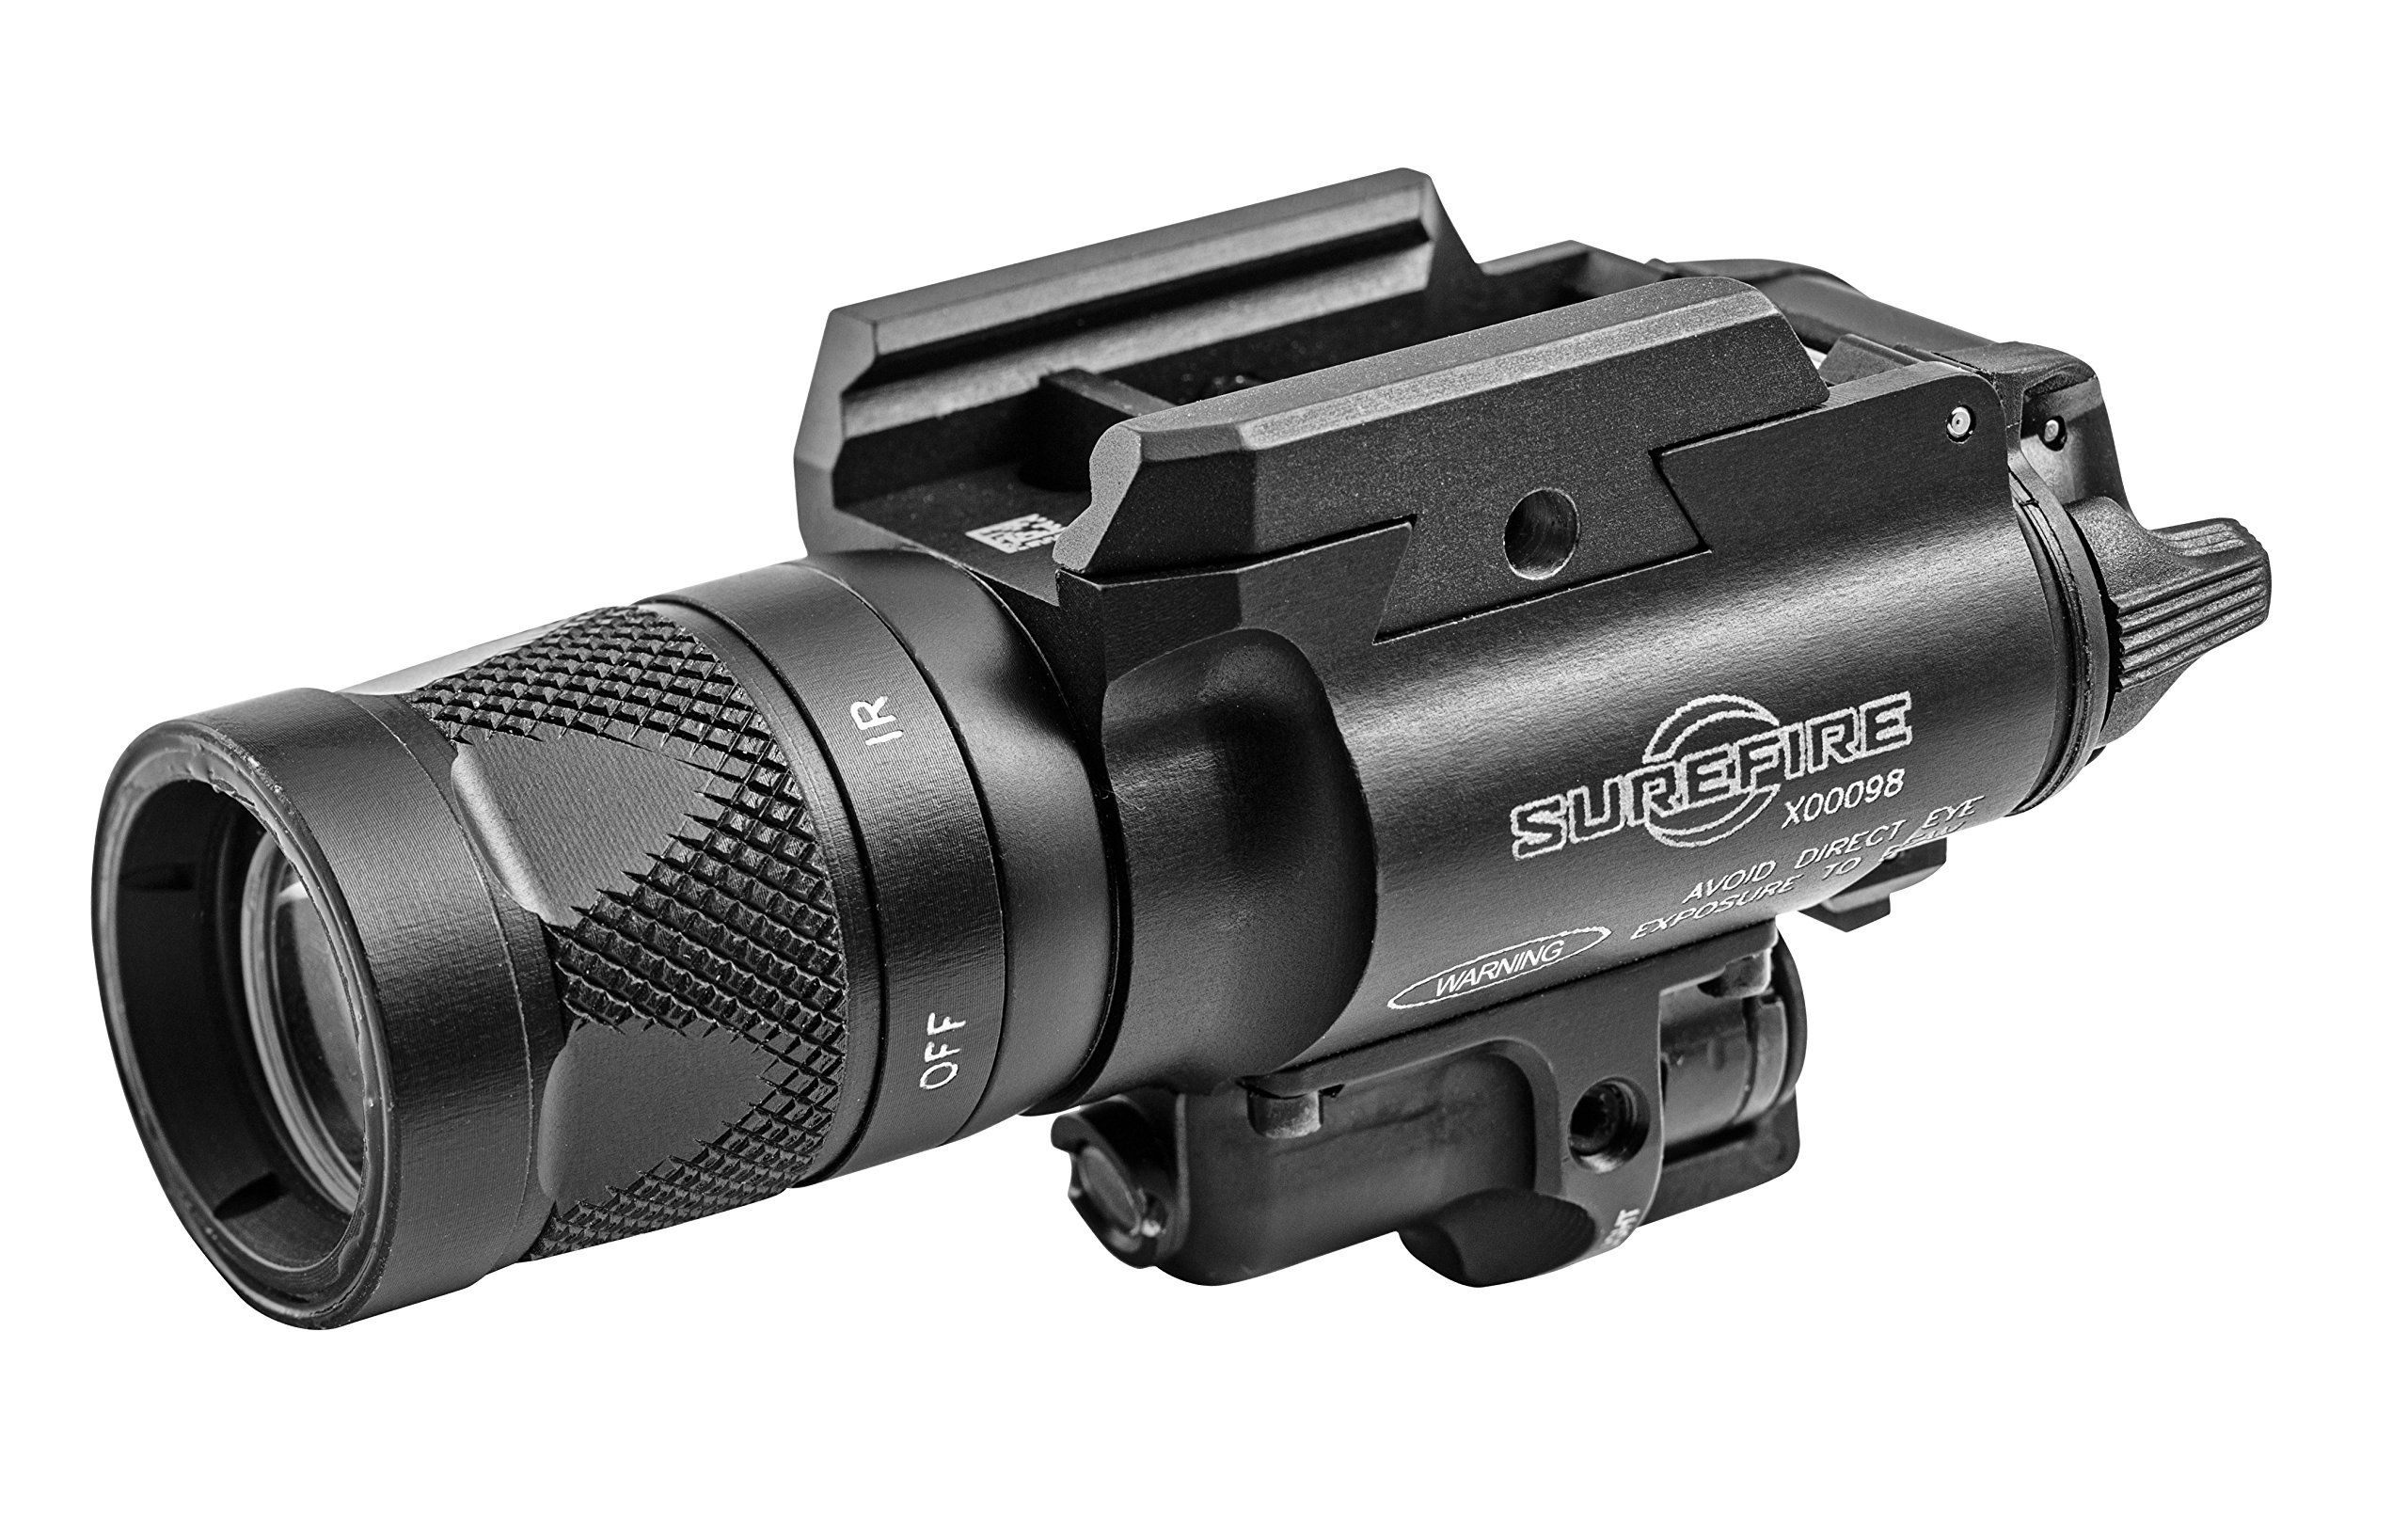 SureFire X400V IRc LED Handgun or Long Gun WeaponLight with IR Output and Infrared Laser Sight